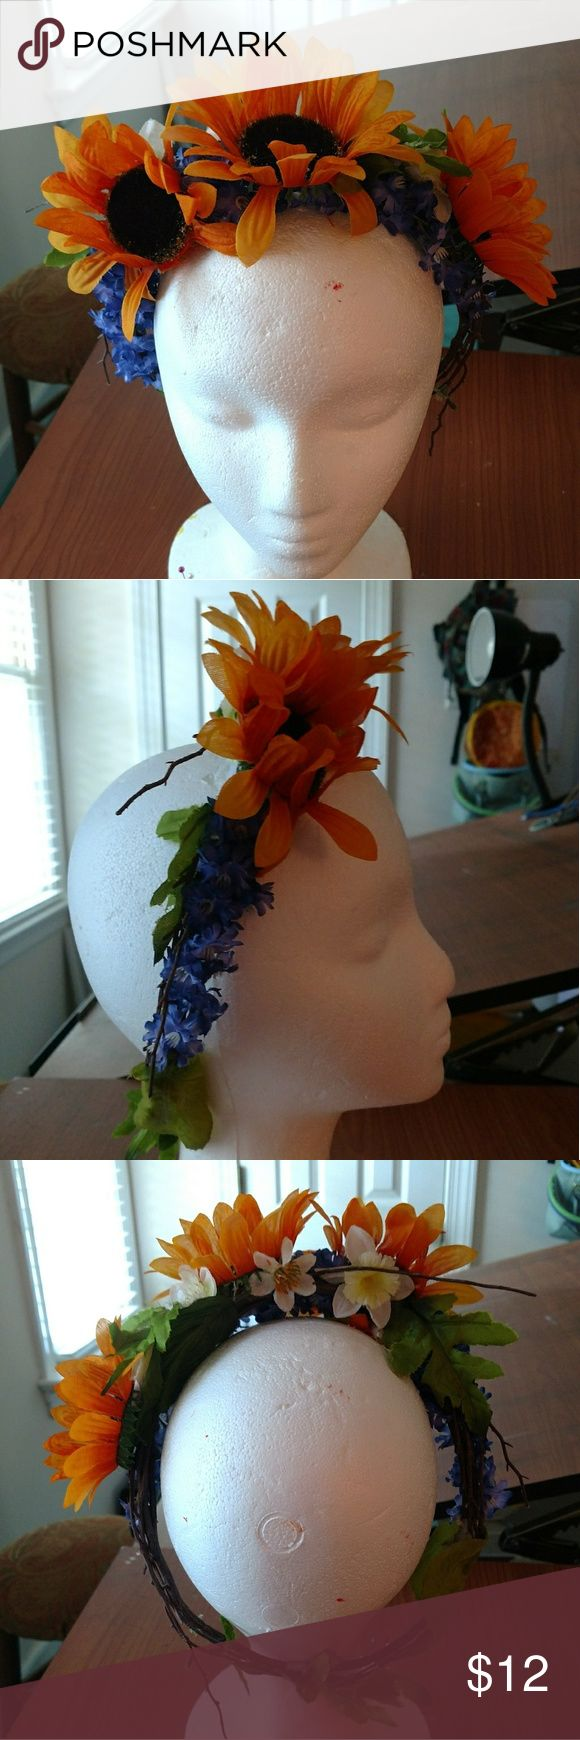 Homemade flower crown Another handmade flower crown, larger size, unworn! Other